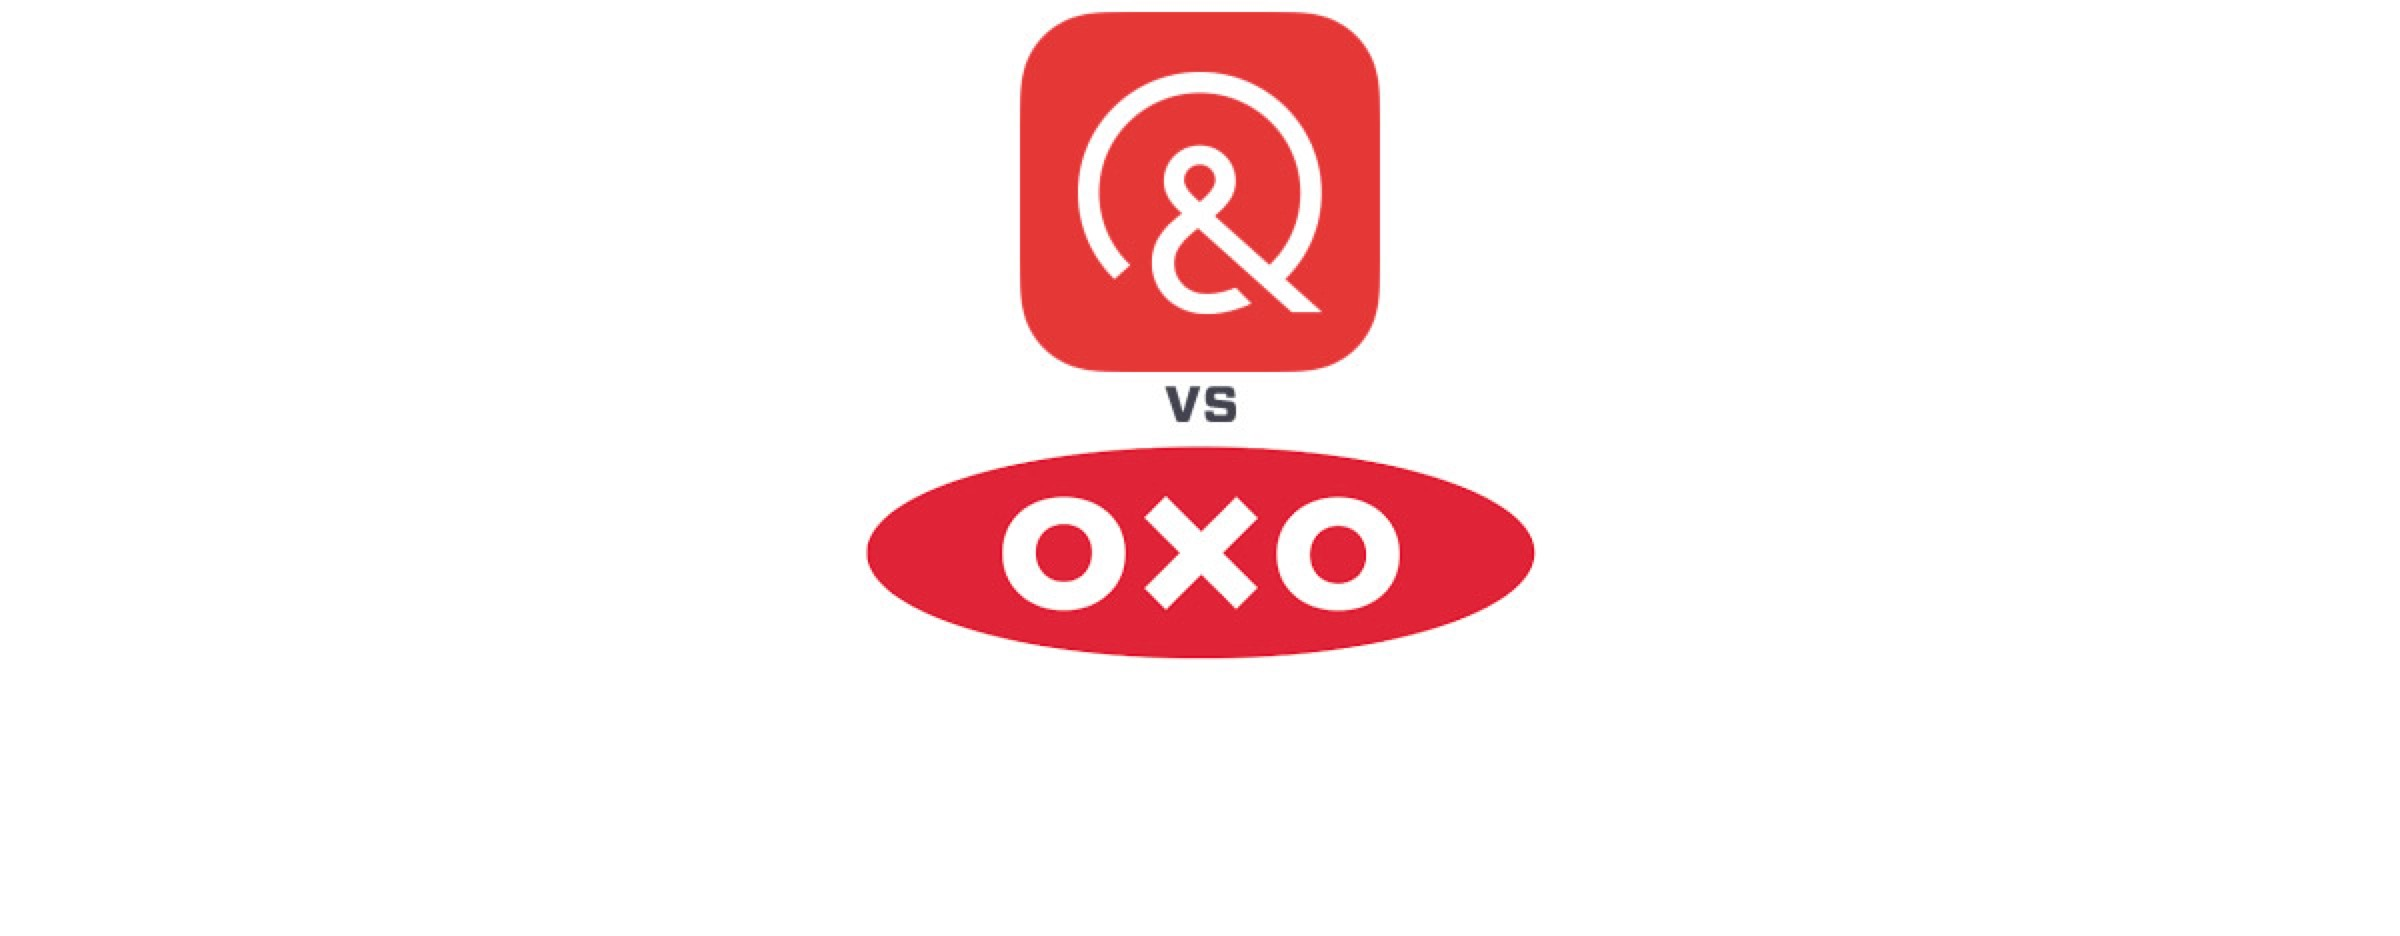 Quirky Vs Oxo